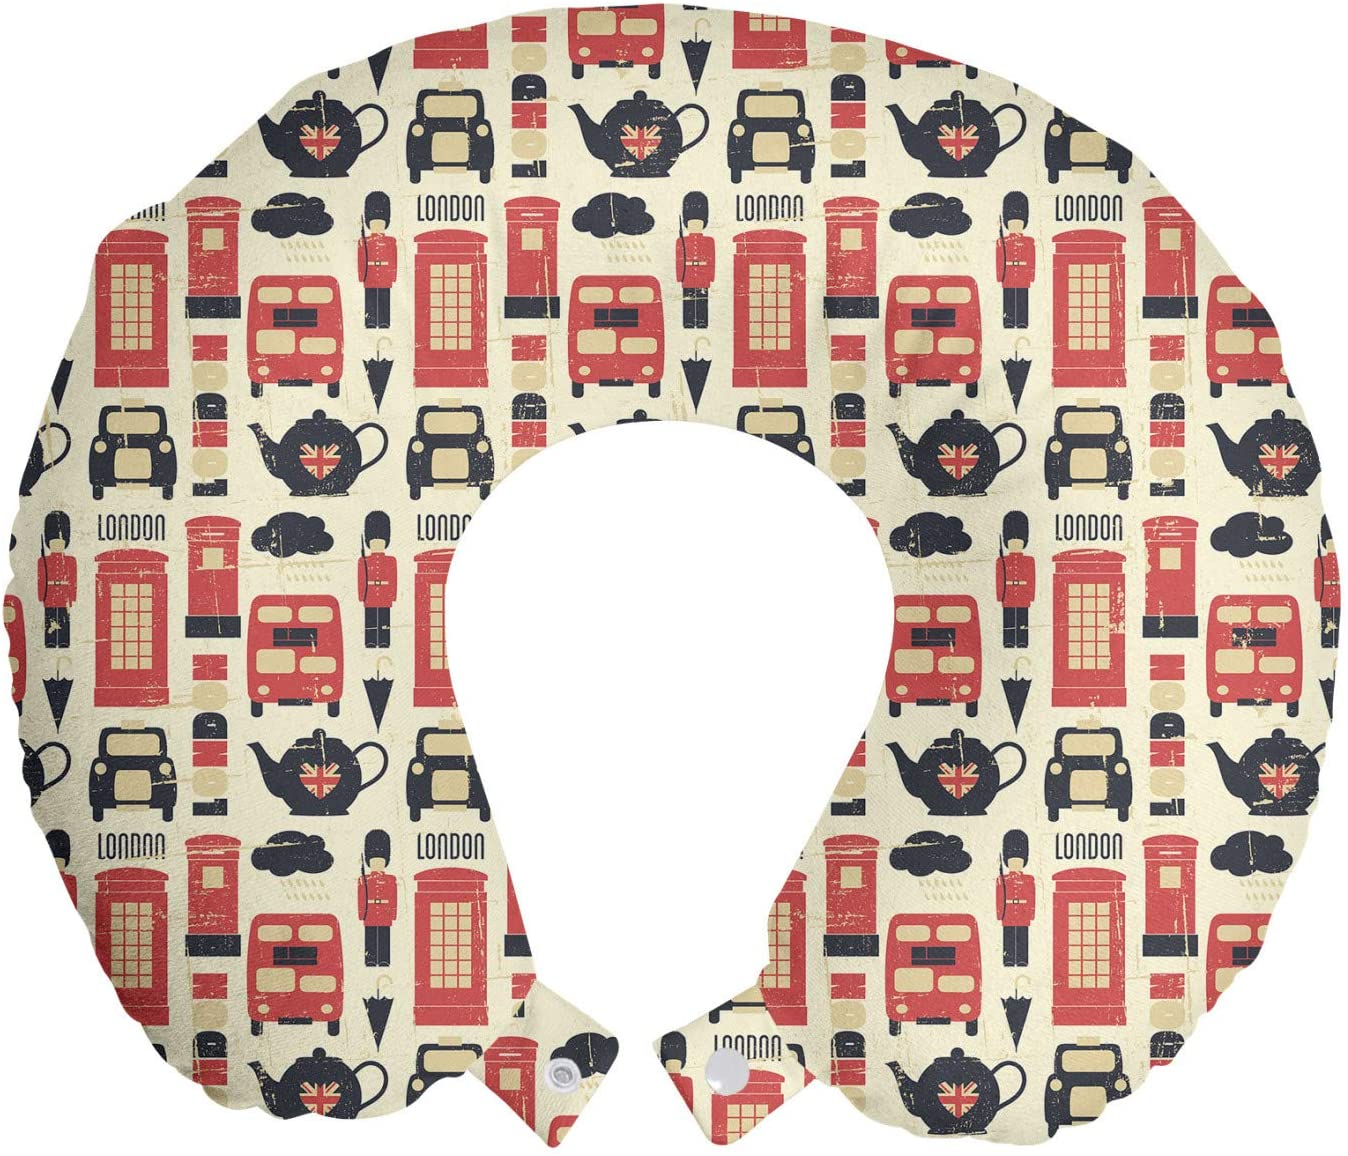 Ambesonne London Travel Pillow Neck Rest, Grunge Looking Vintage Traditional Theme Graphic Design Pattern, Memory Foam Traveling Accessory for Airplane and Car, 12